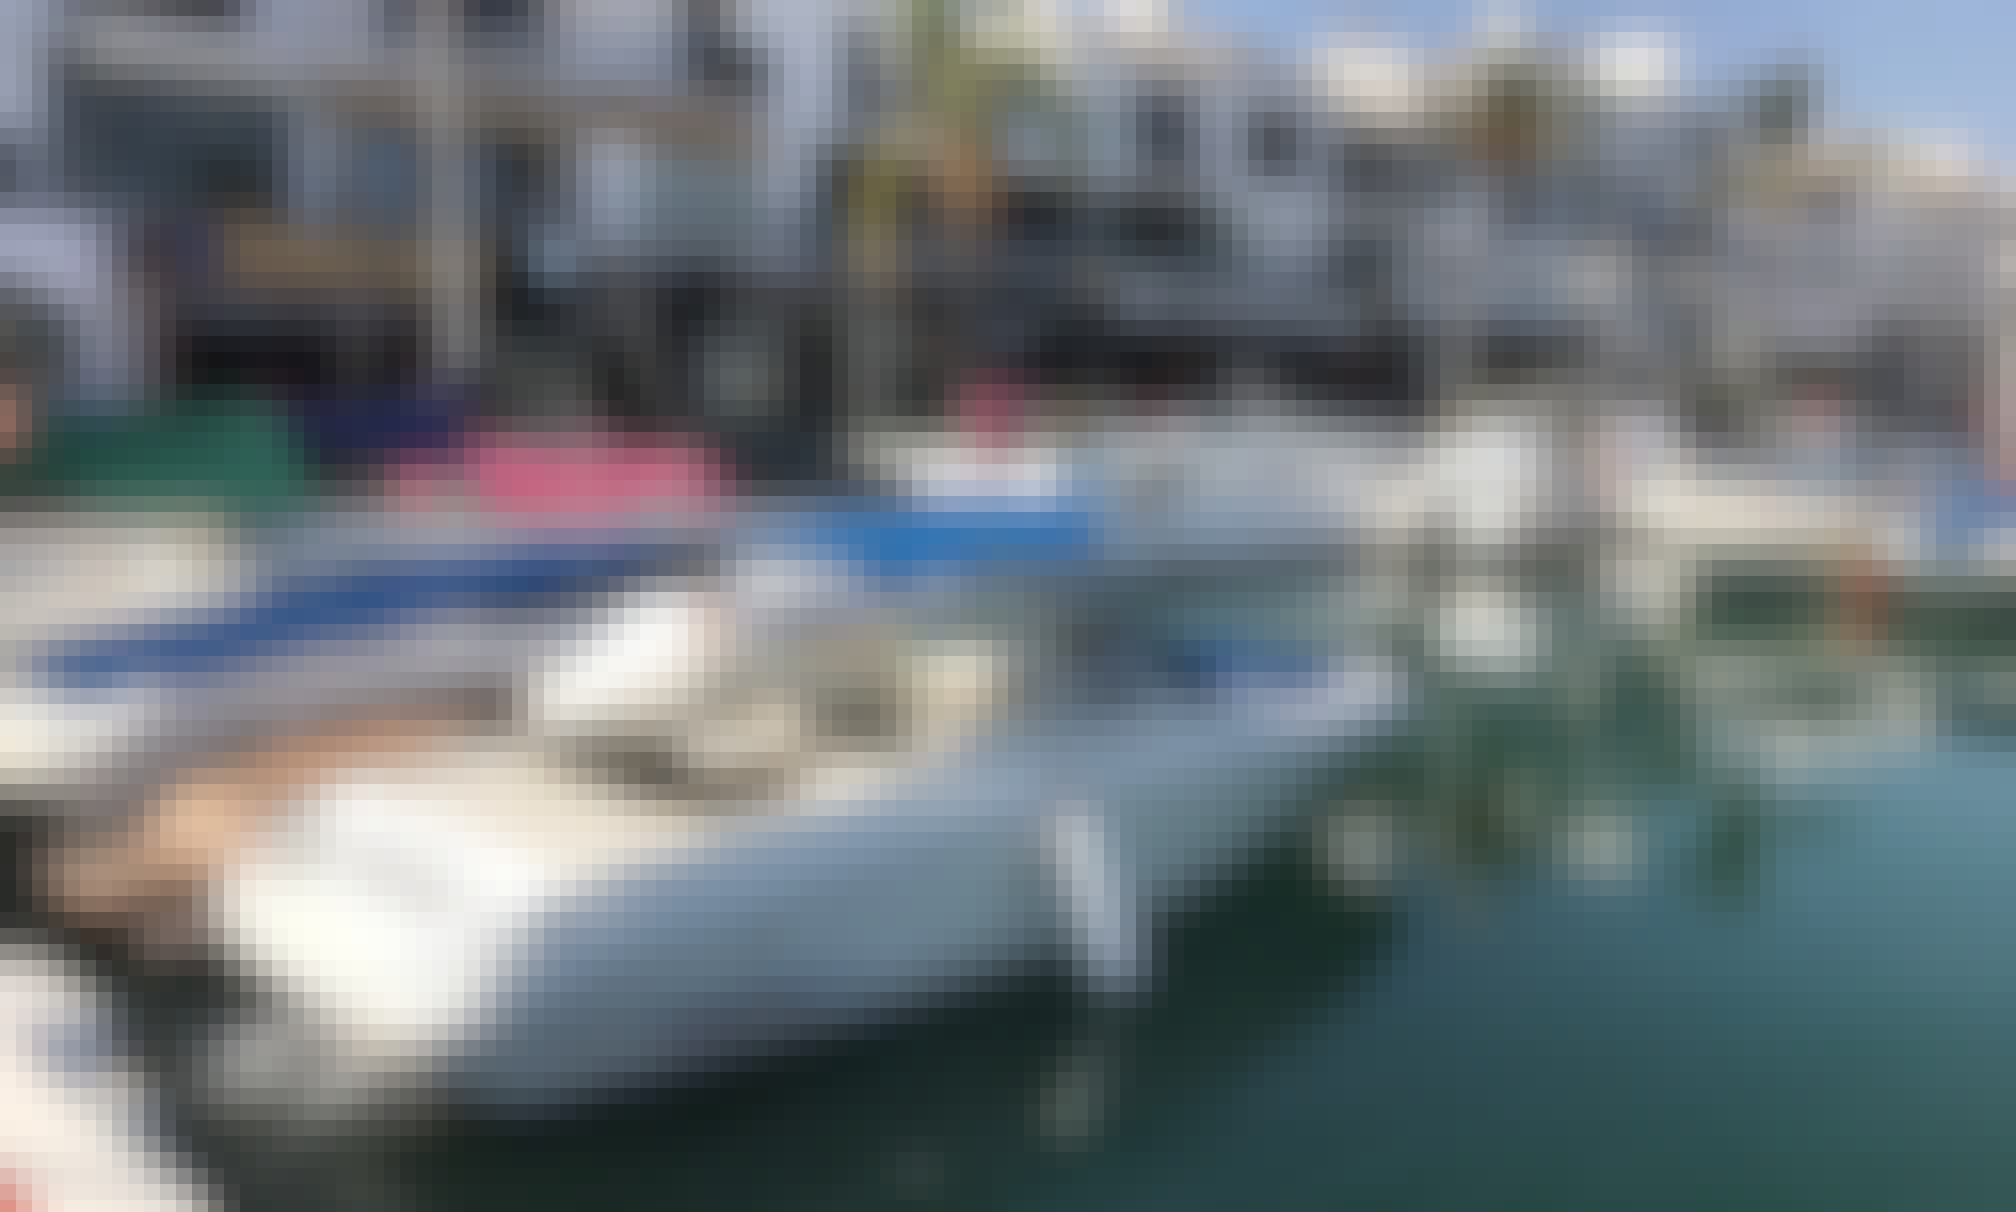 Sea Ray Sun Deck 260 Bowrider with Tube Inflatable in Marbella